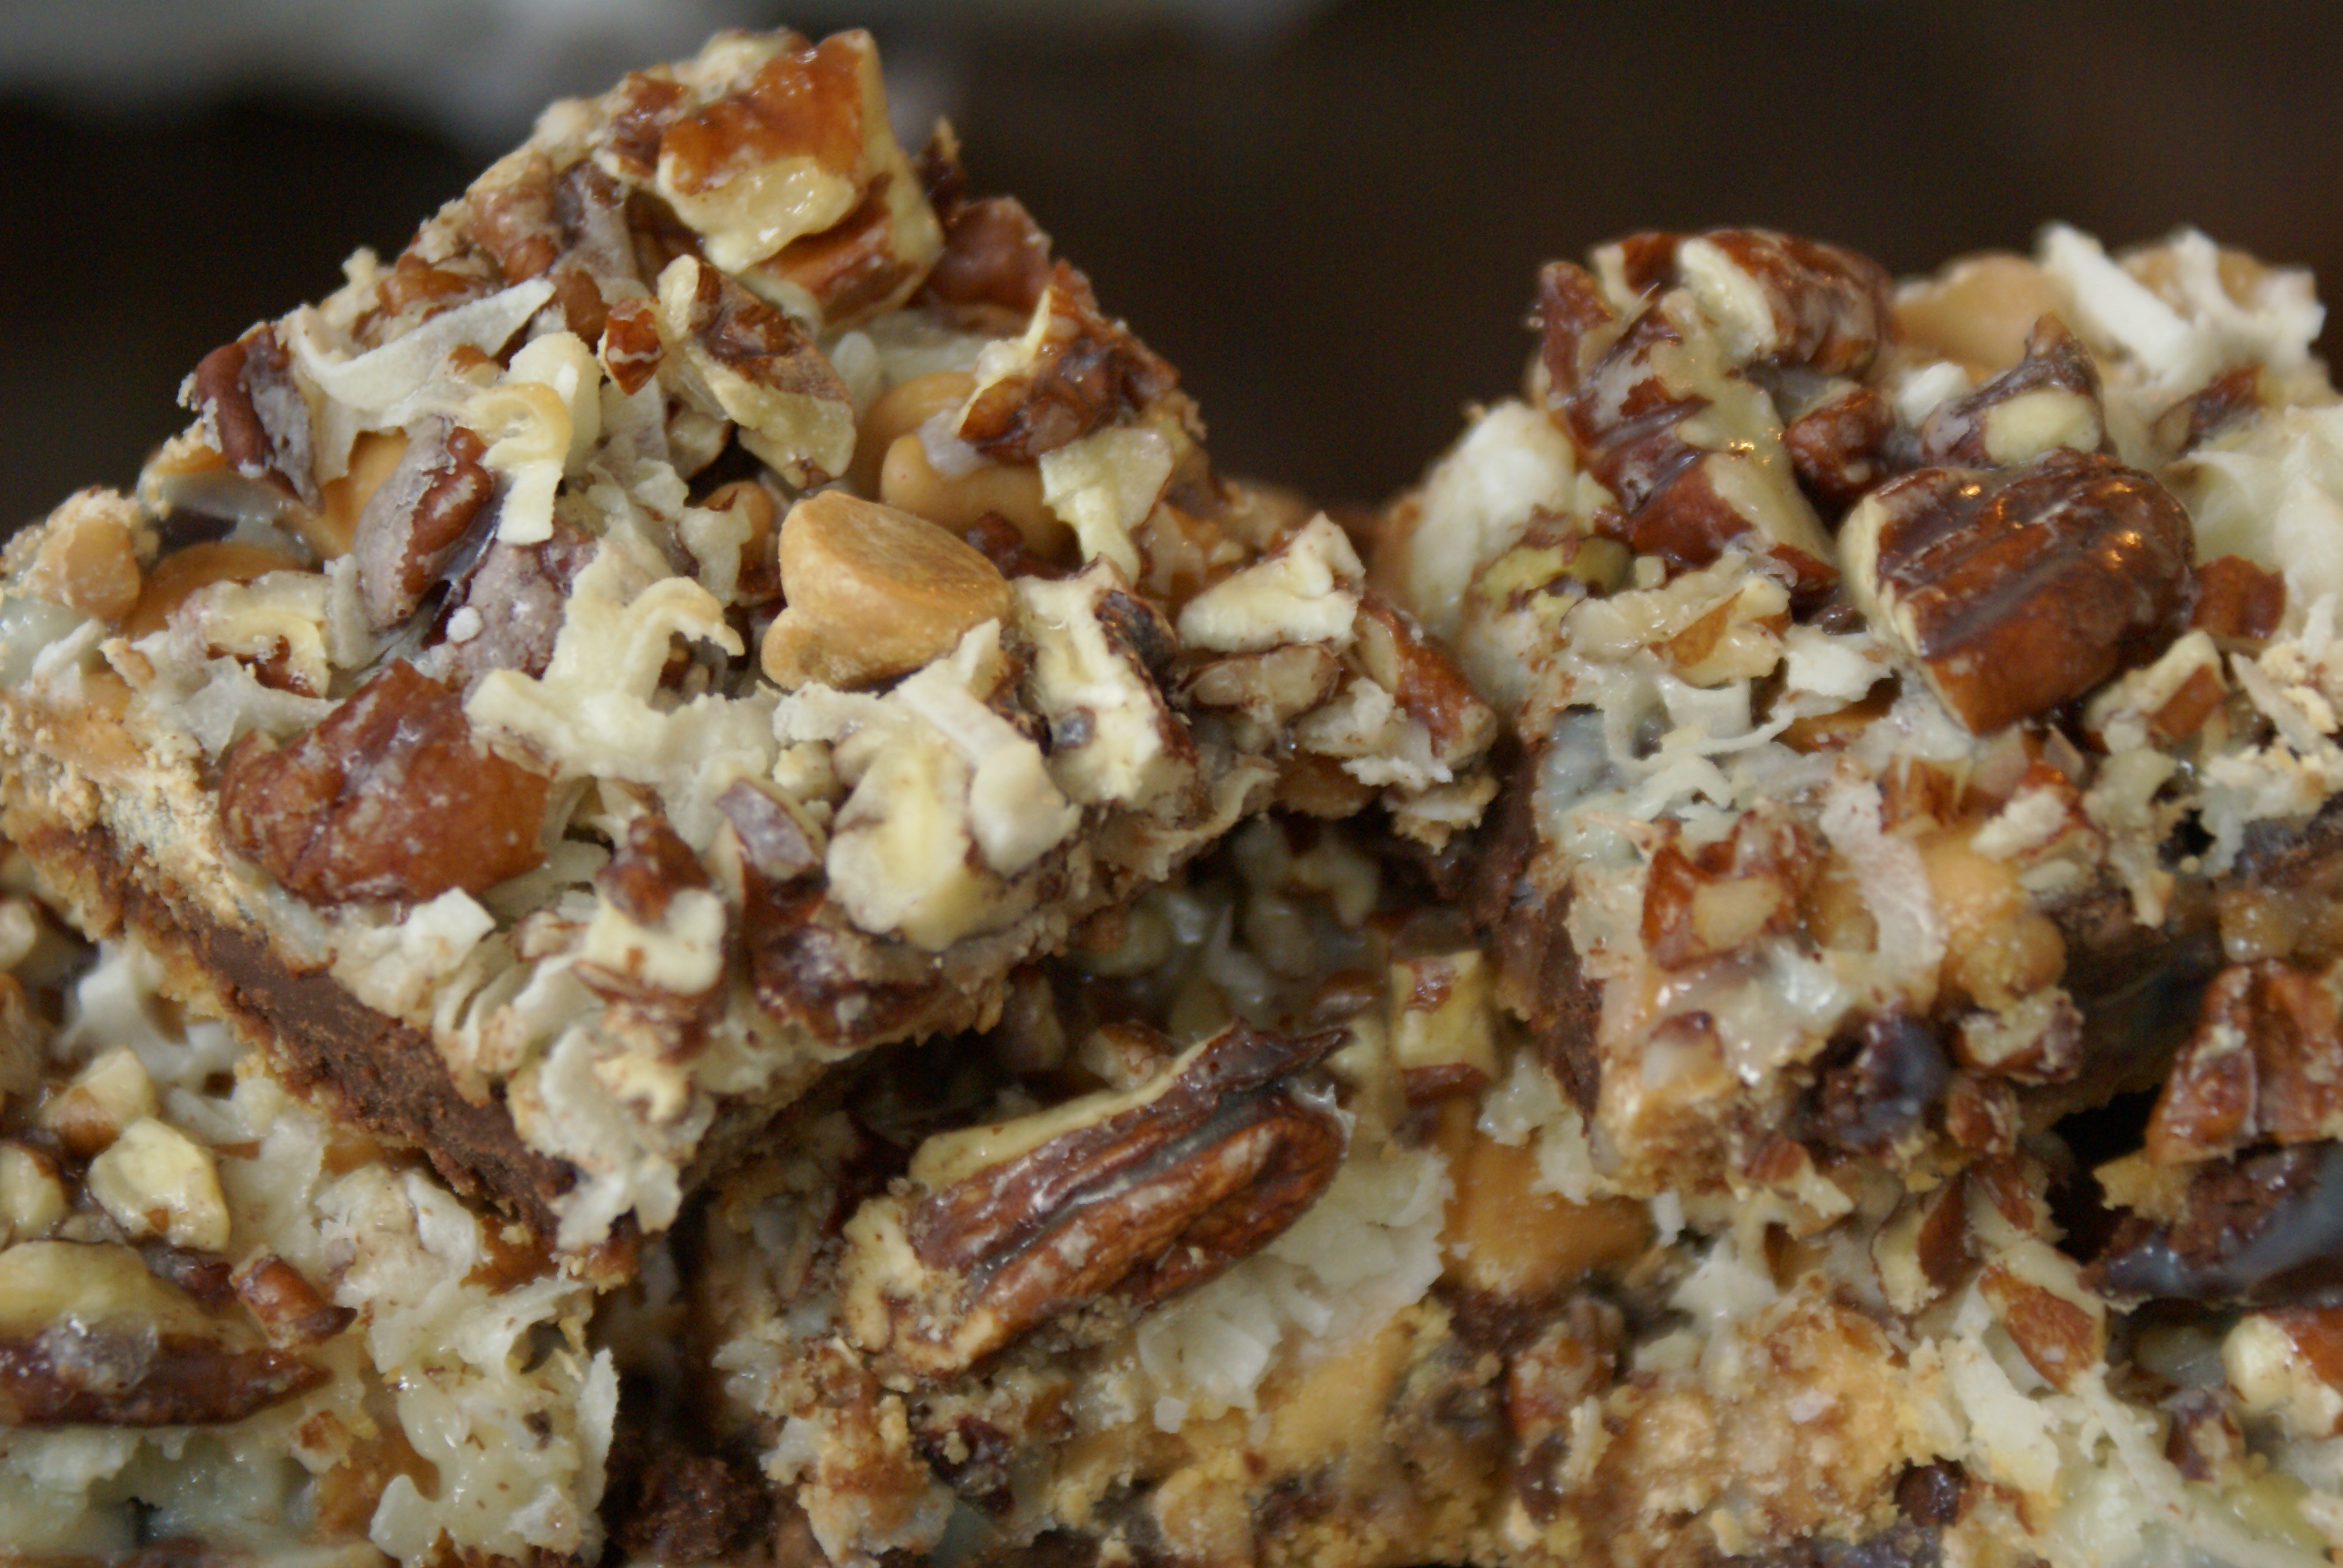 ... seven layer bars magic bars or some other normal title in my family